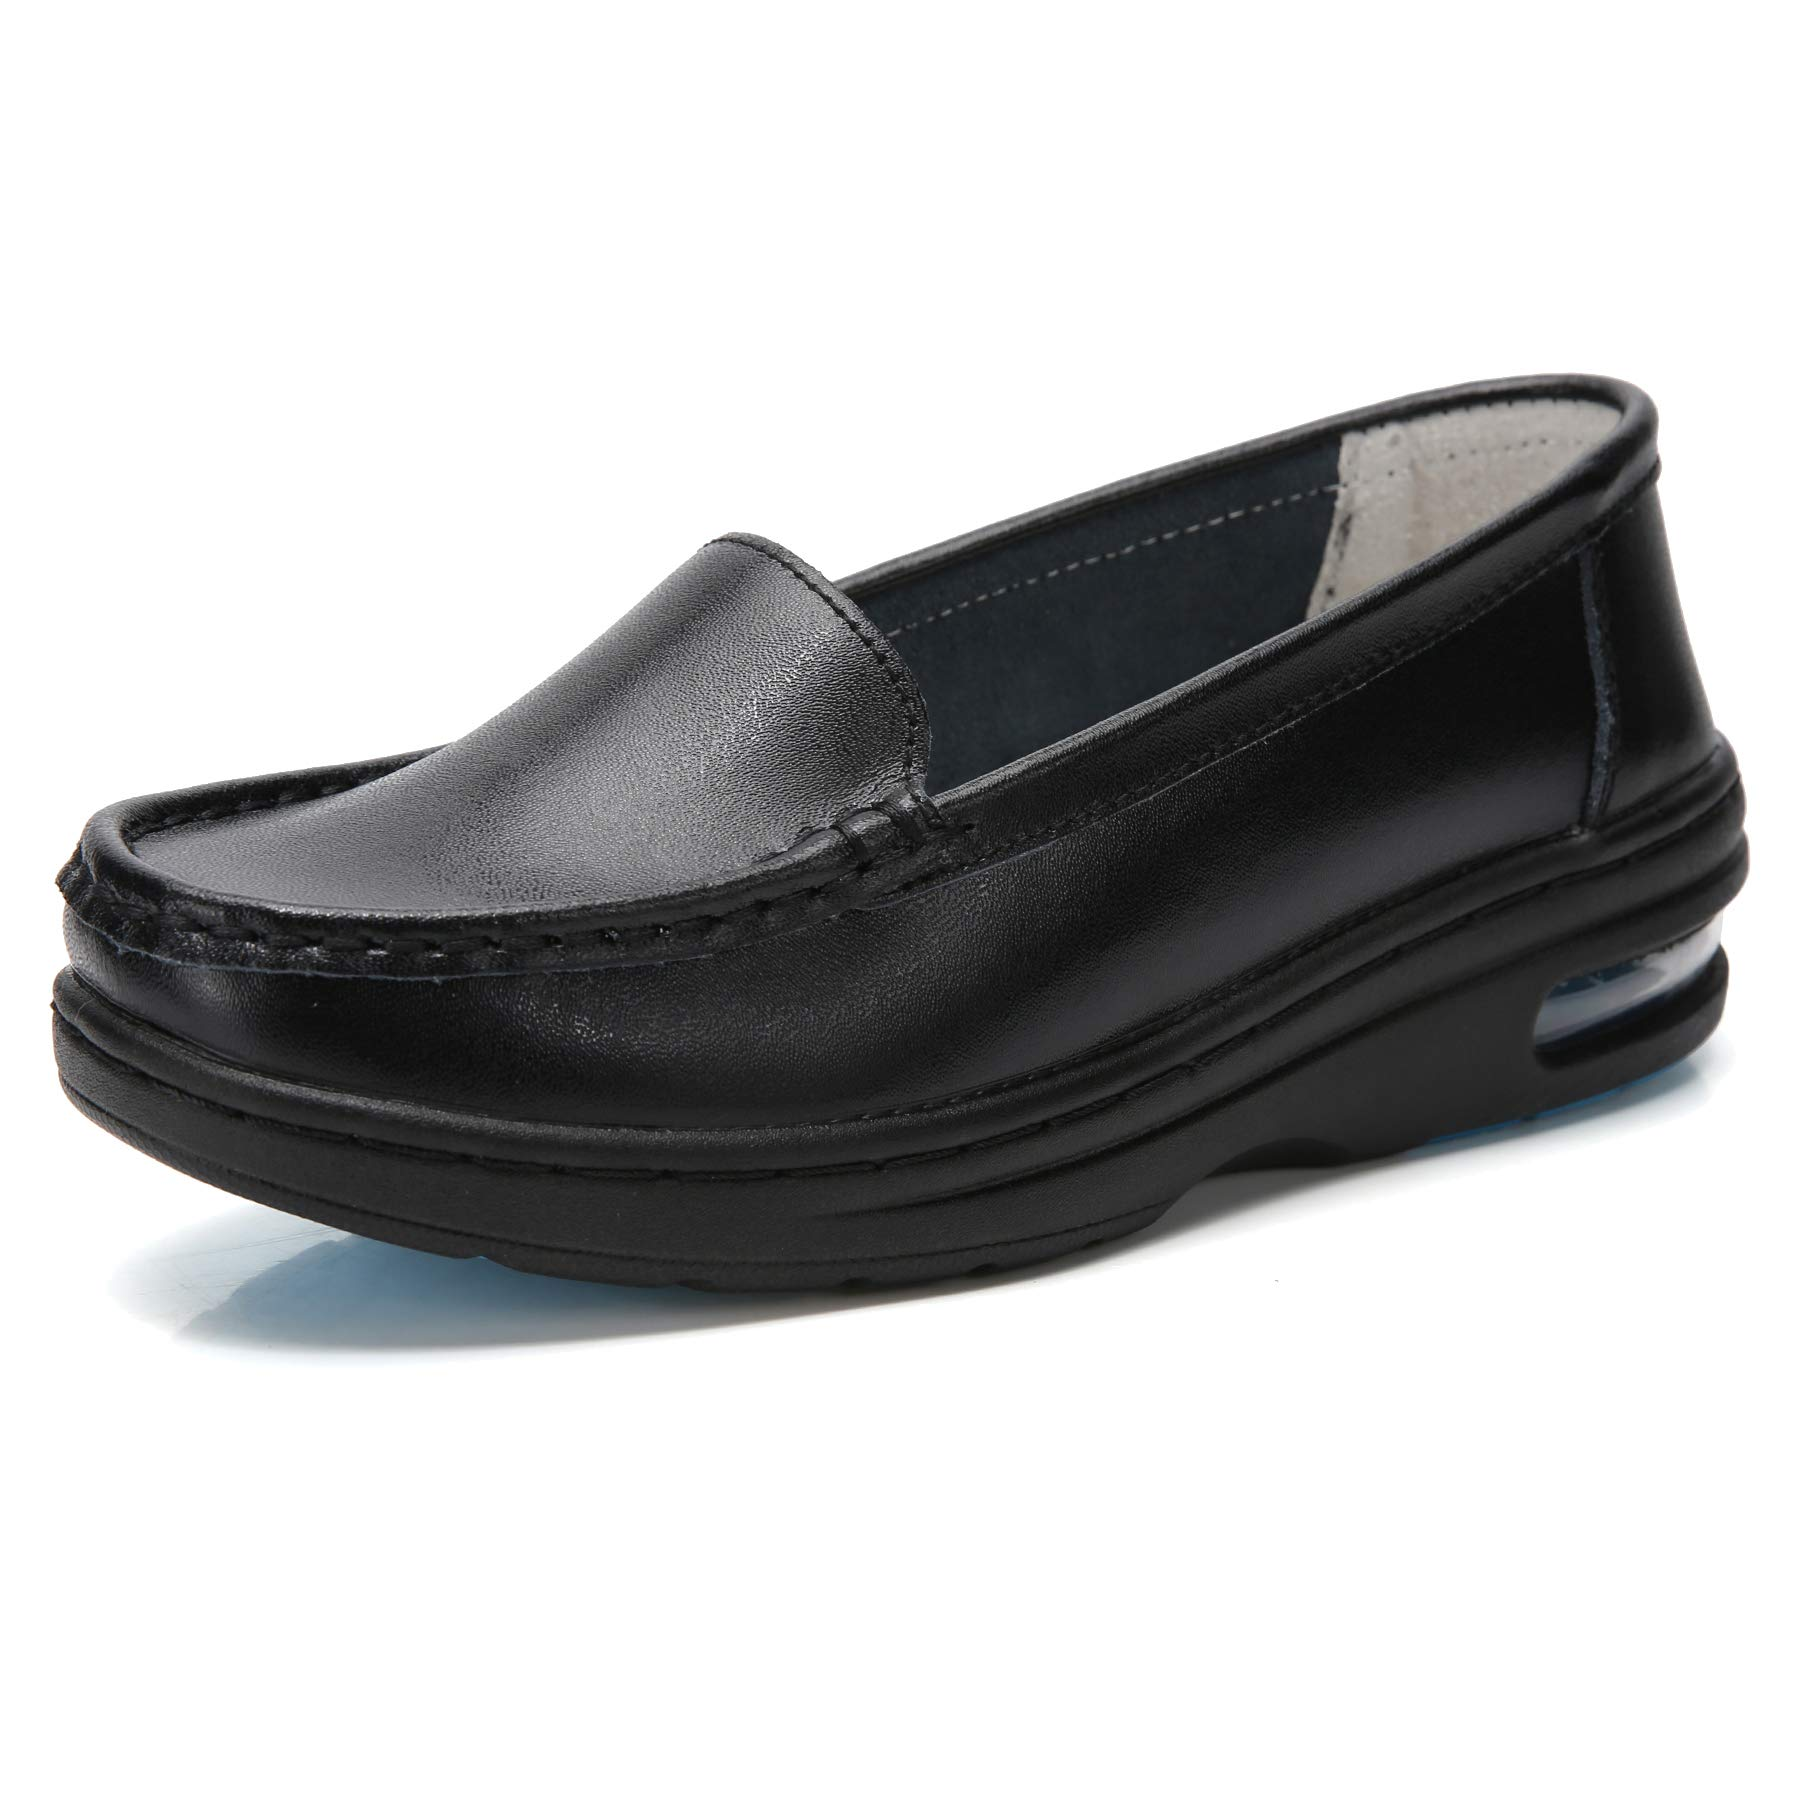 TRULAND Women's Leather Nurse Shoes All